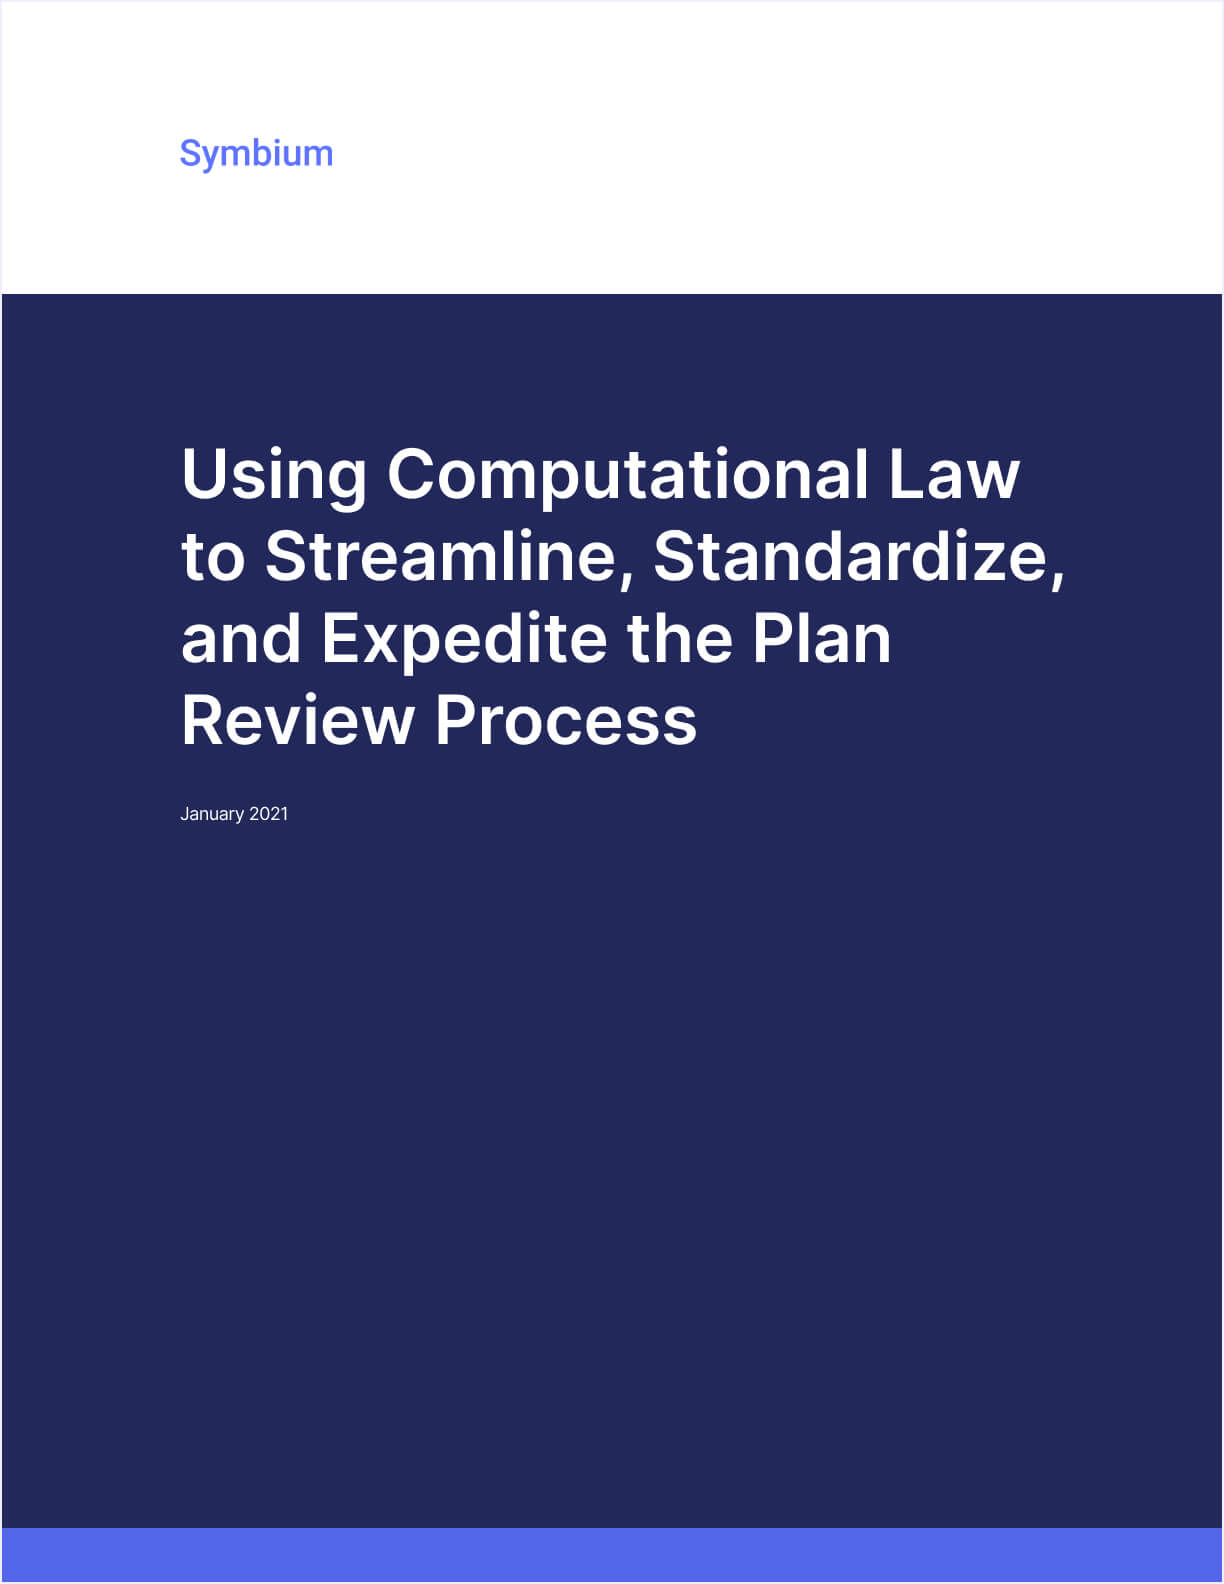 Thumbnail of Using Computational Law To Streamline, Standardize And Expedite the Plan Review Process